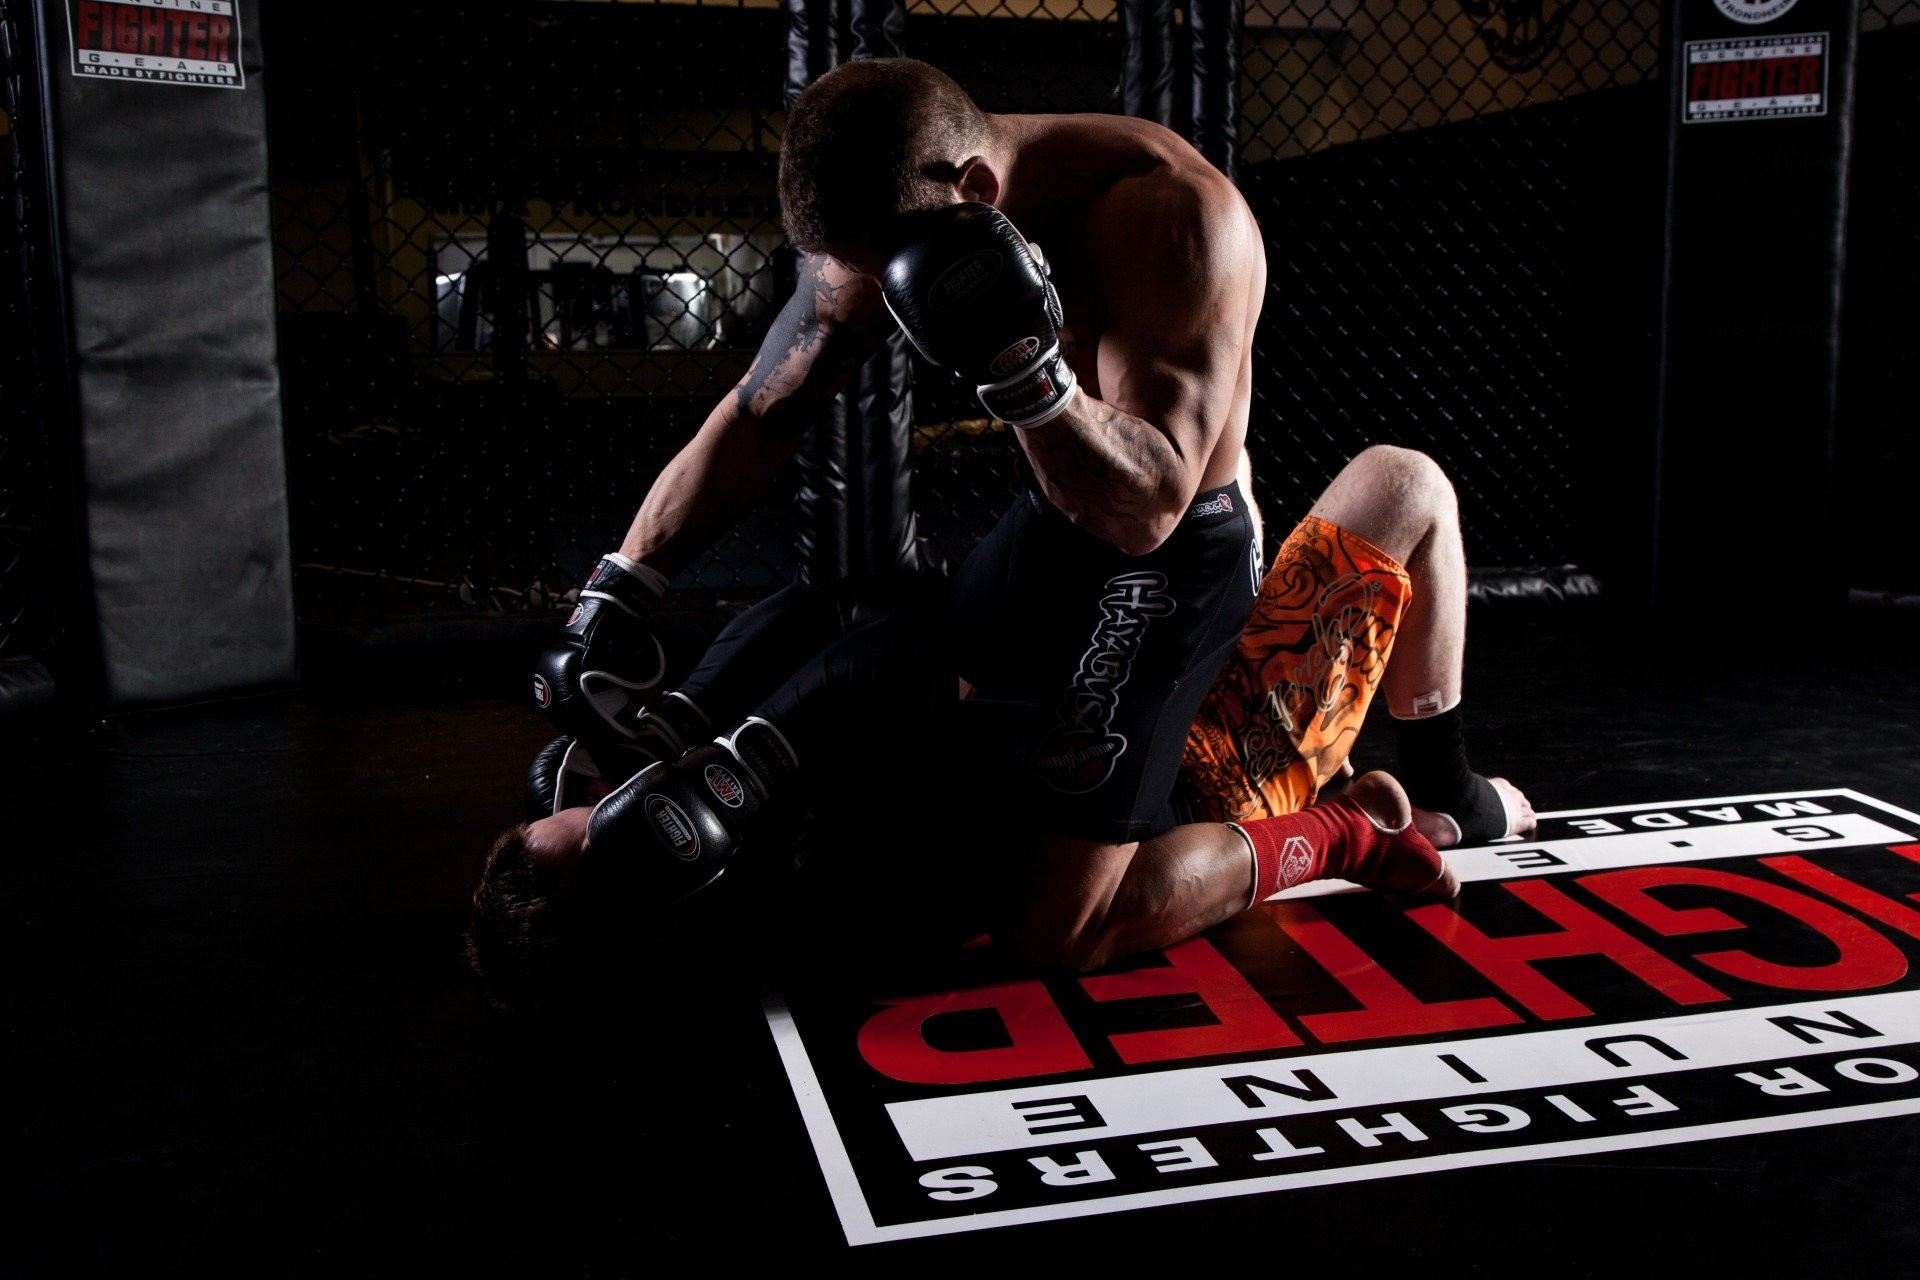 1920x1280 fight wrestling muscles cell mma